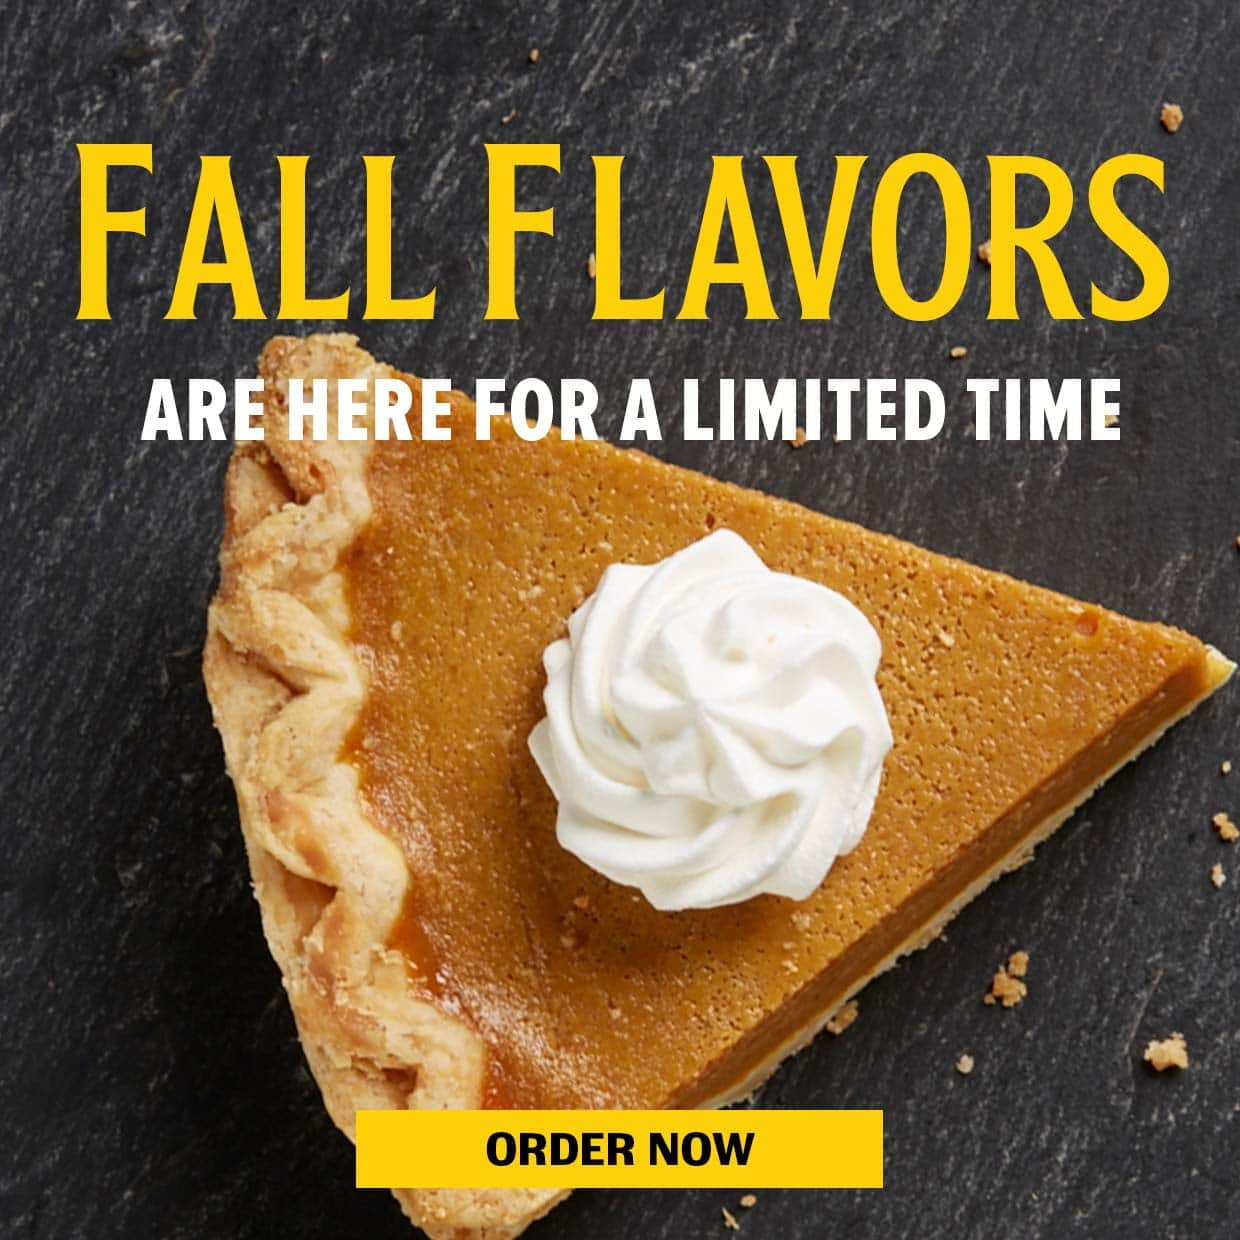 Fall Flavors are here for a limited time. Order Now